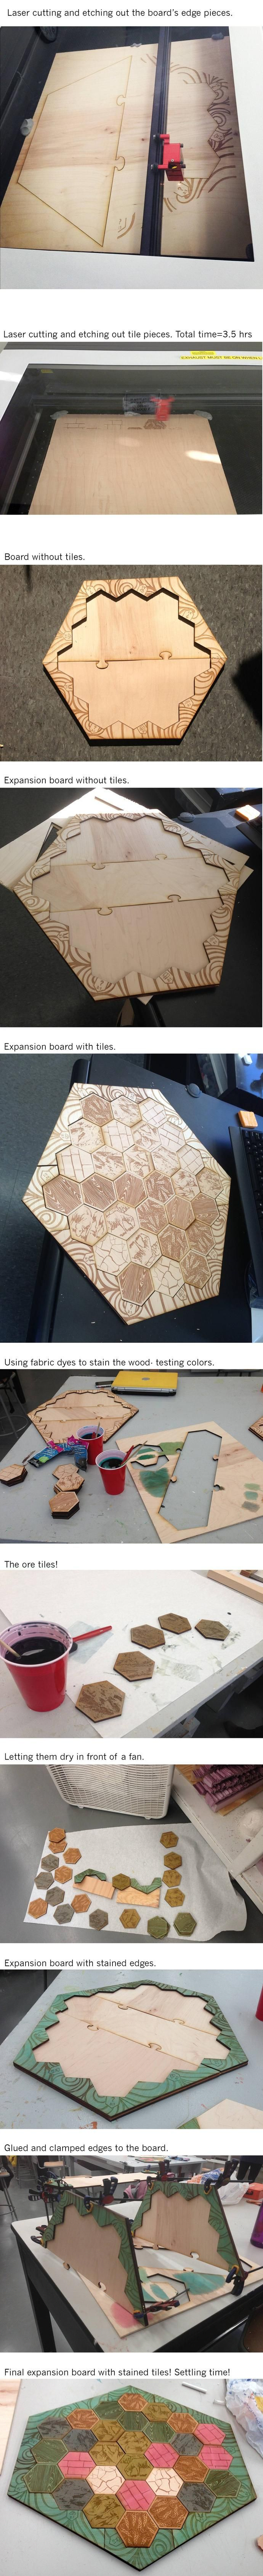 I laser cut and stained a Settlers of Catan board! - Imgur